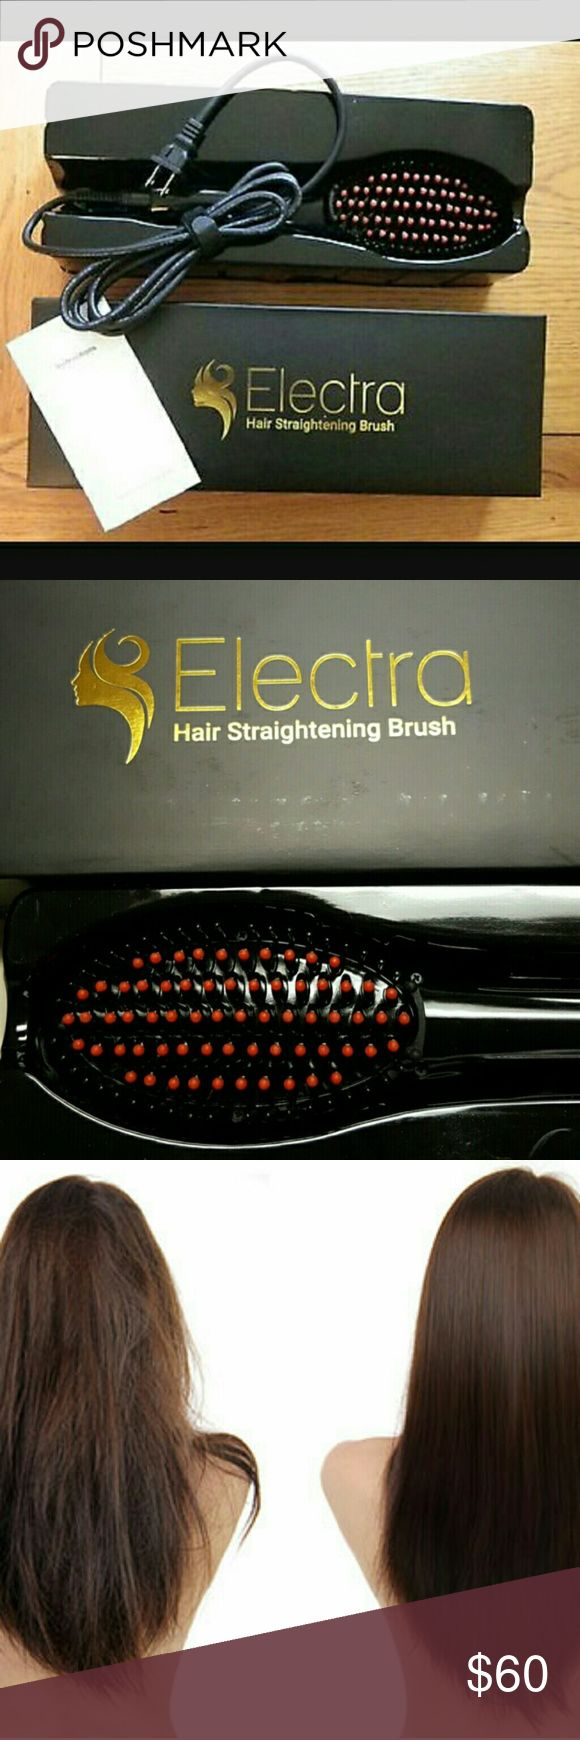 🎉NEW!🎉 Hair Brush Straightner The Electra Hair Brush is a combination between a hair brush and a hair straightener. It looks like a hairbrush with an electrical cord attached. Using advanced technology, it claims to straighten and style your hair with less heat damage than conventional straighteners.  There?s even an LED screen to let you customize your settings so you get the perfect hairdo every time.  The brush is priced at around $100 per unit.   New in box with instructions! Electra…